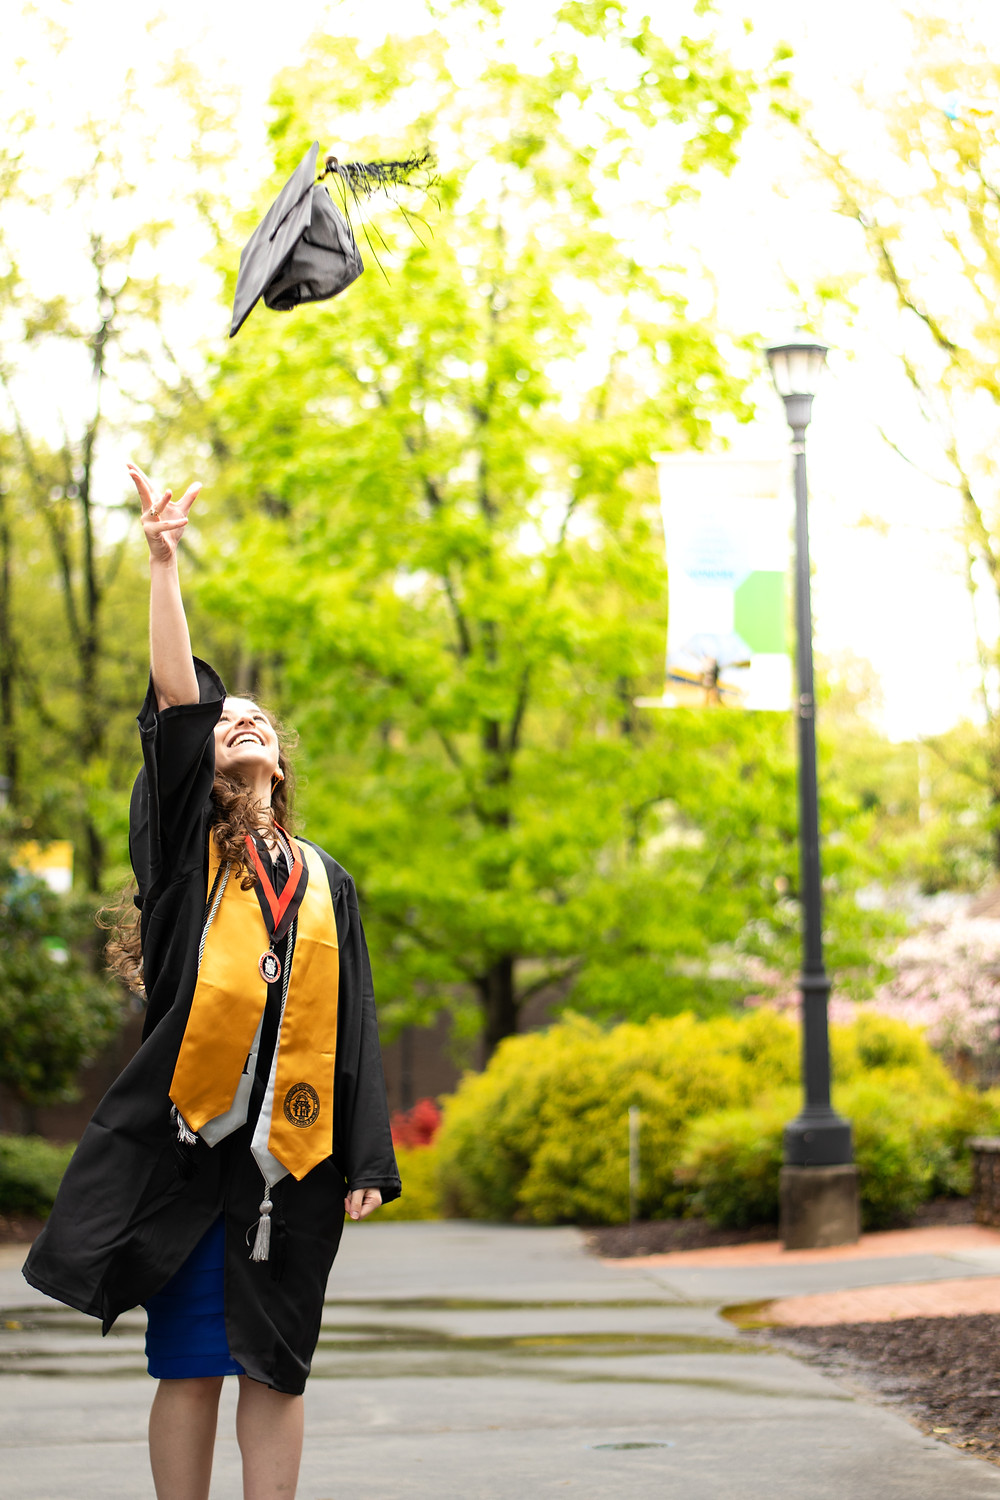 Woman throwing mortarboard in air